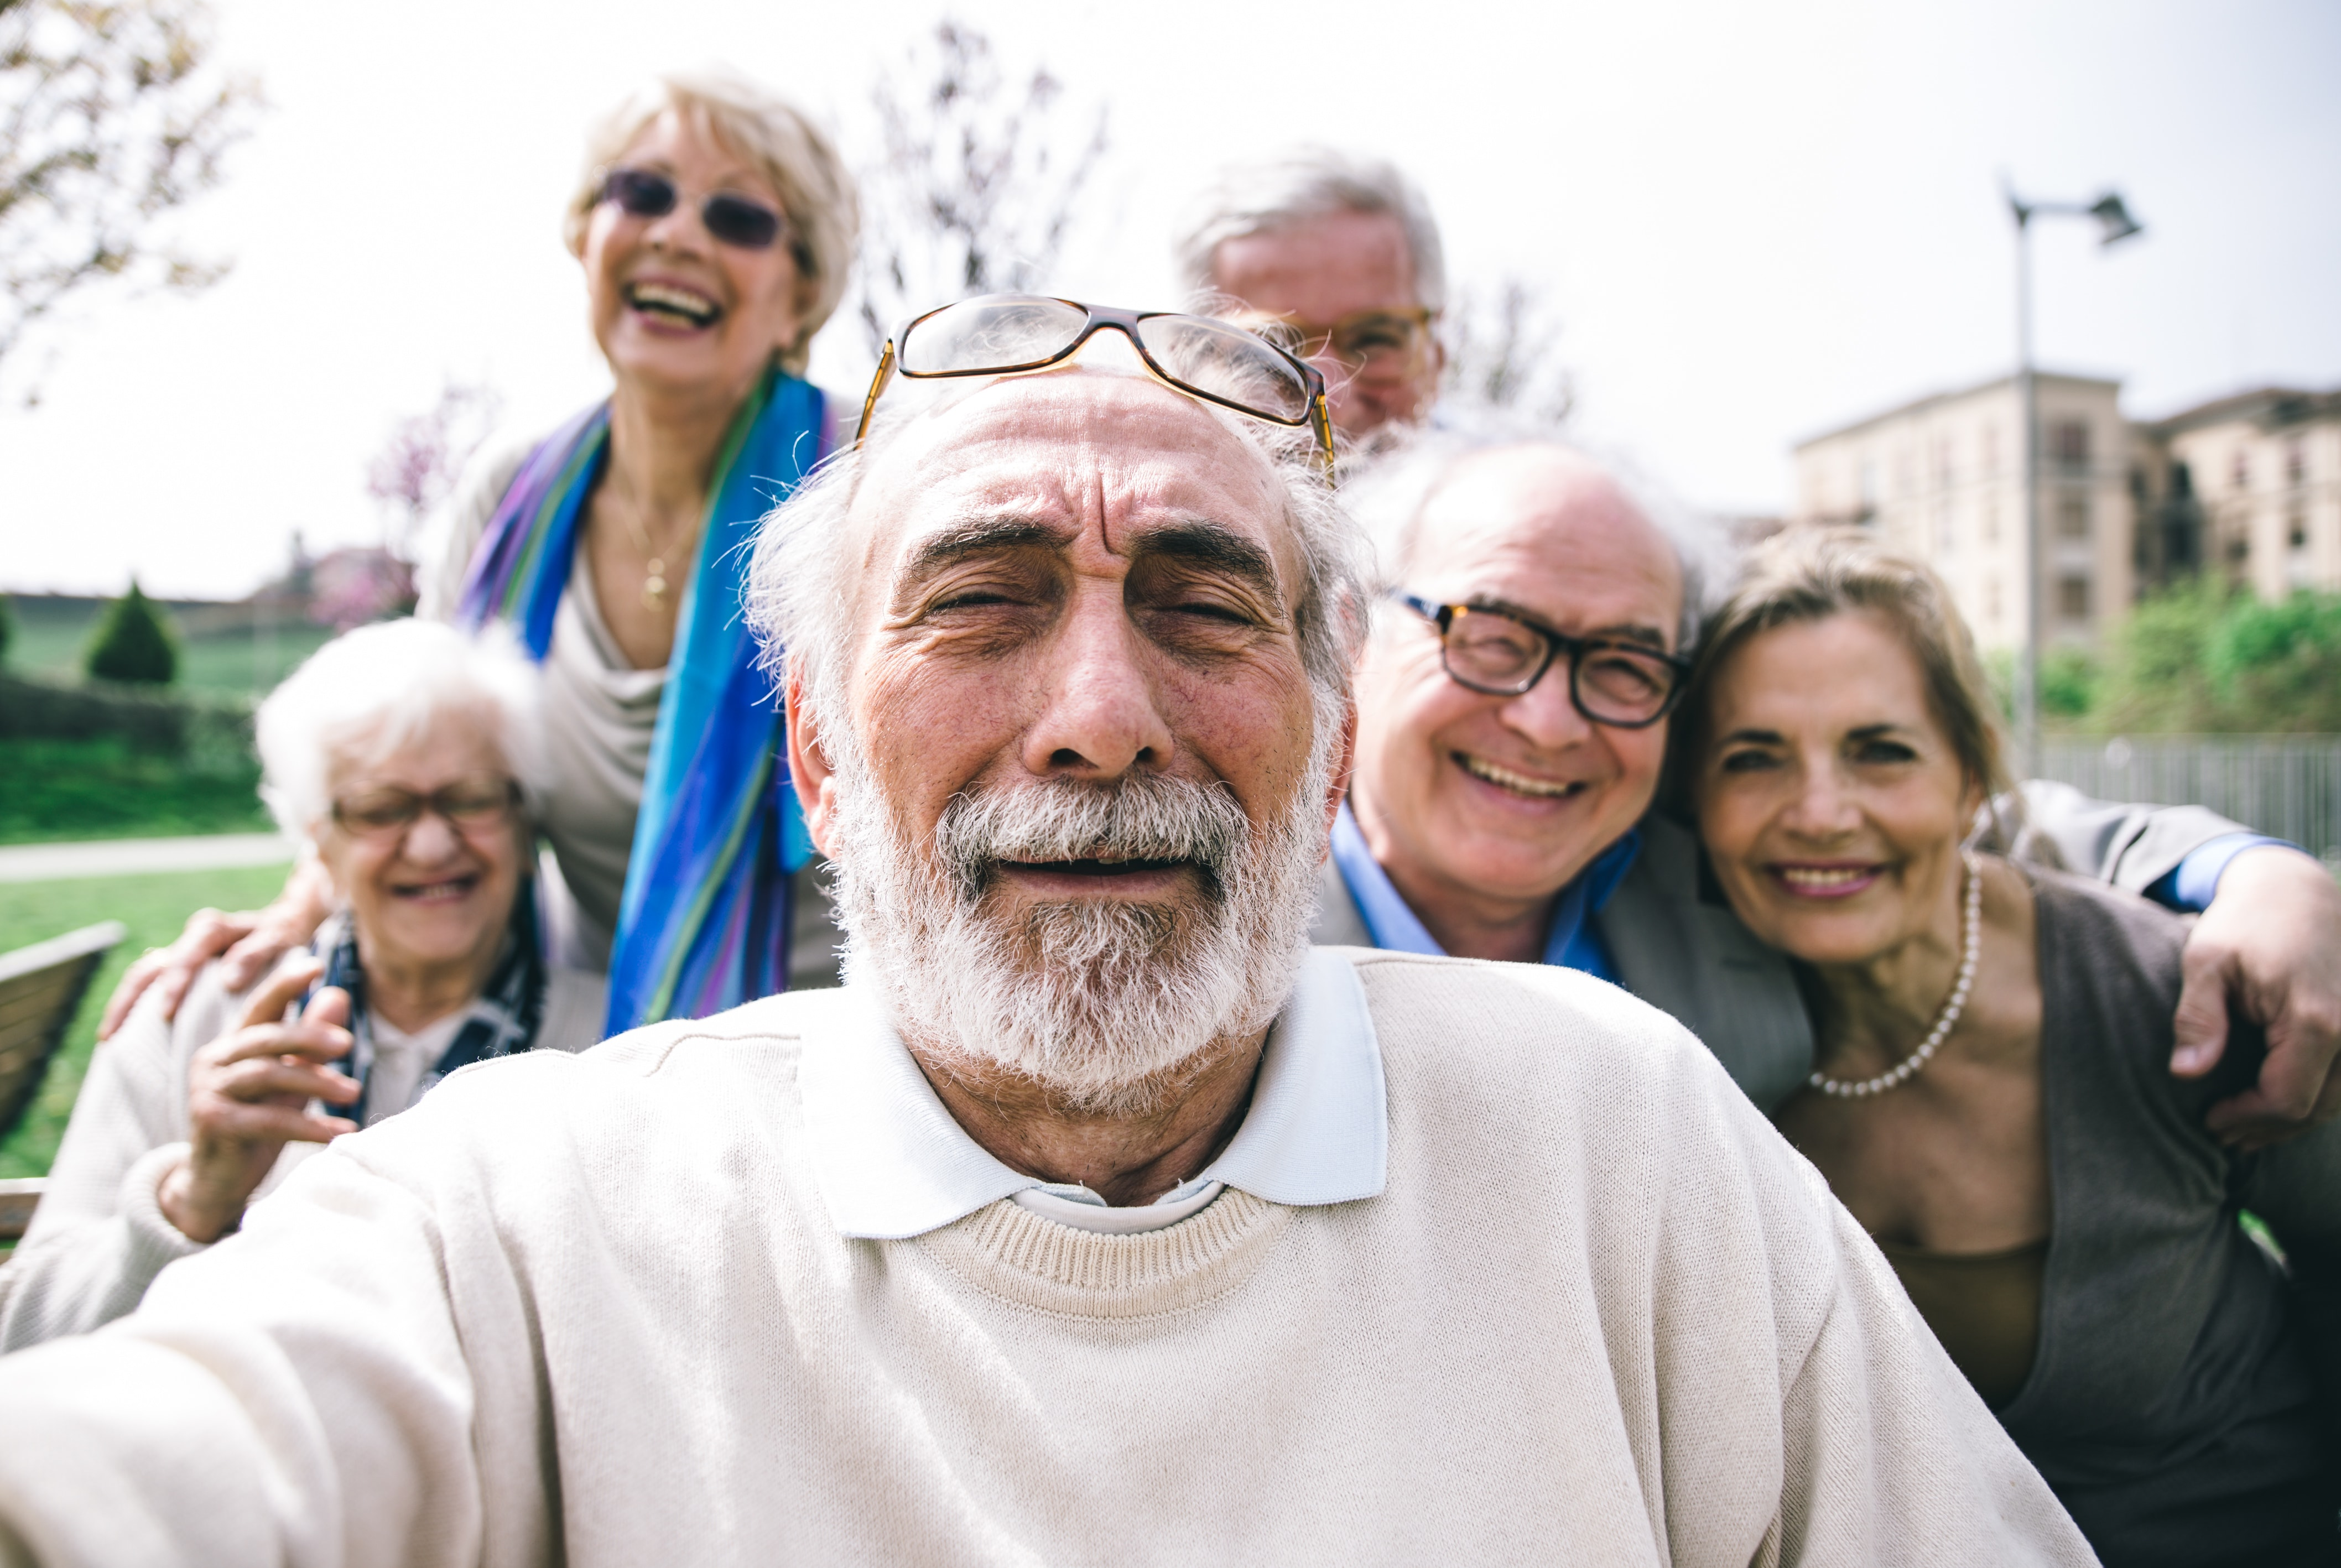 Canadians 55+ among happiest people in the country